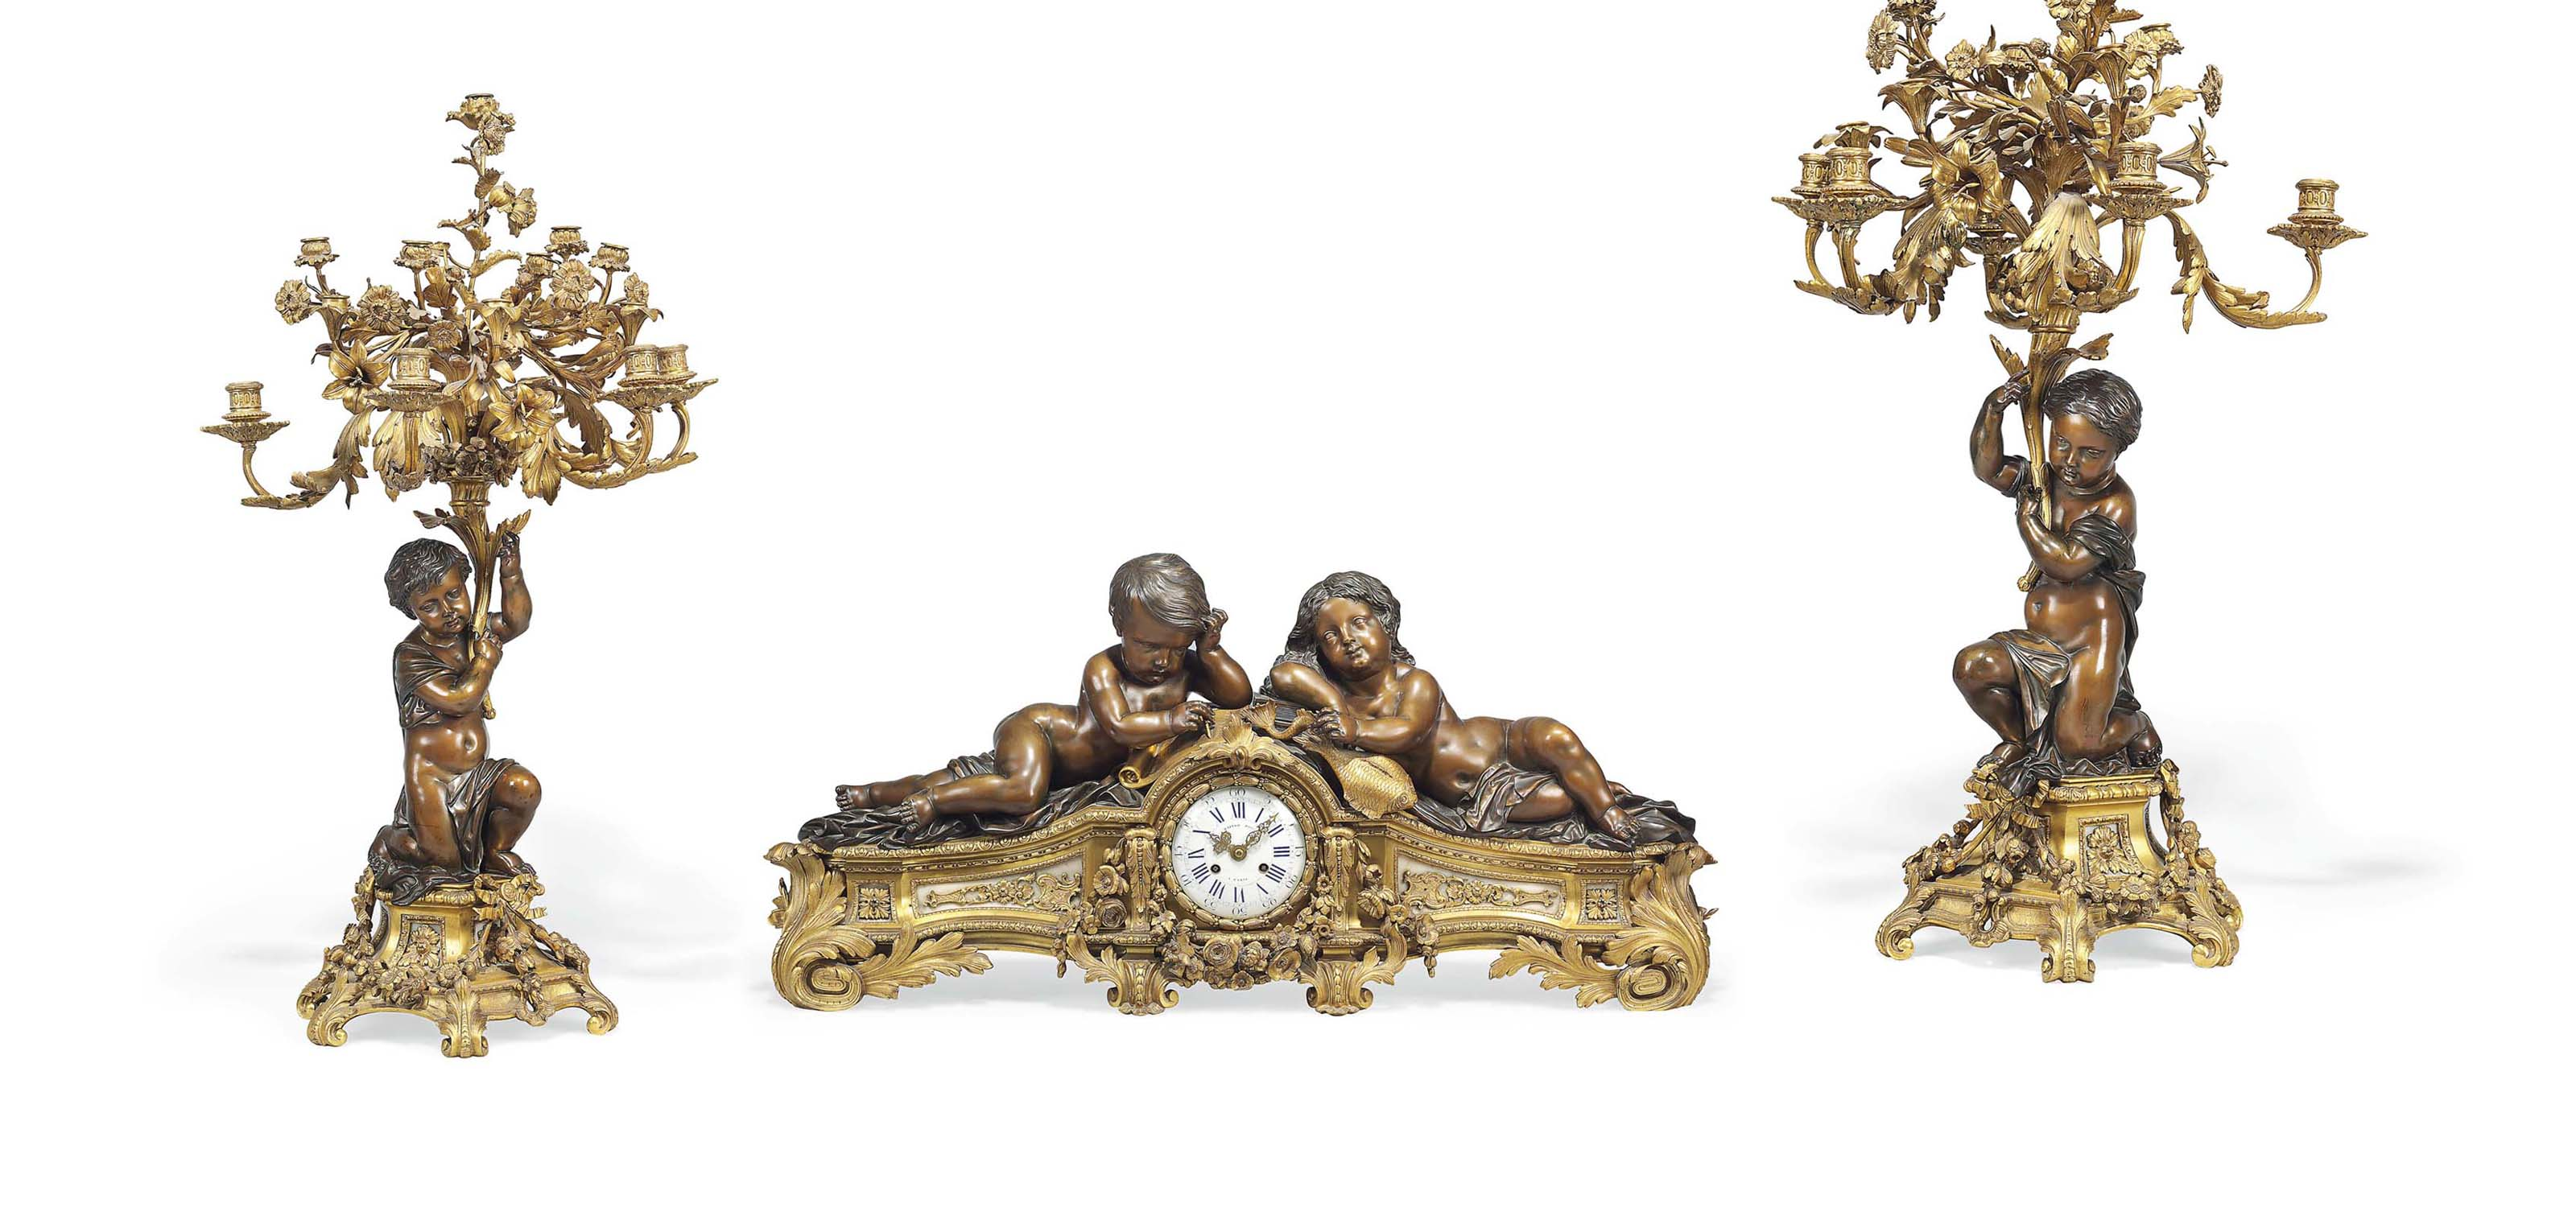 A LARGE FRENCH ORMOLU, PATINAT